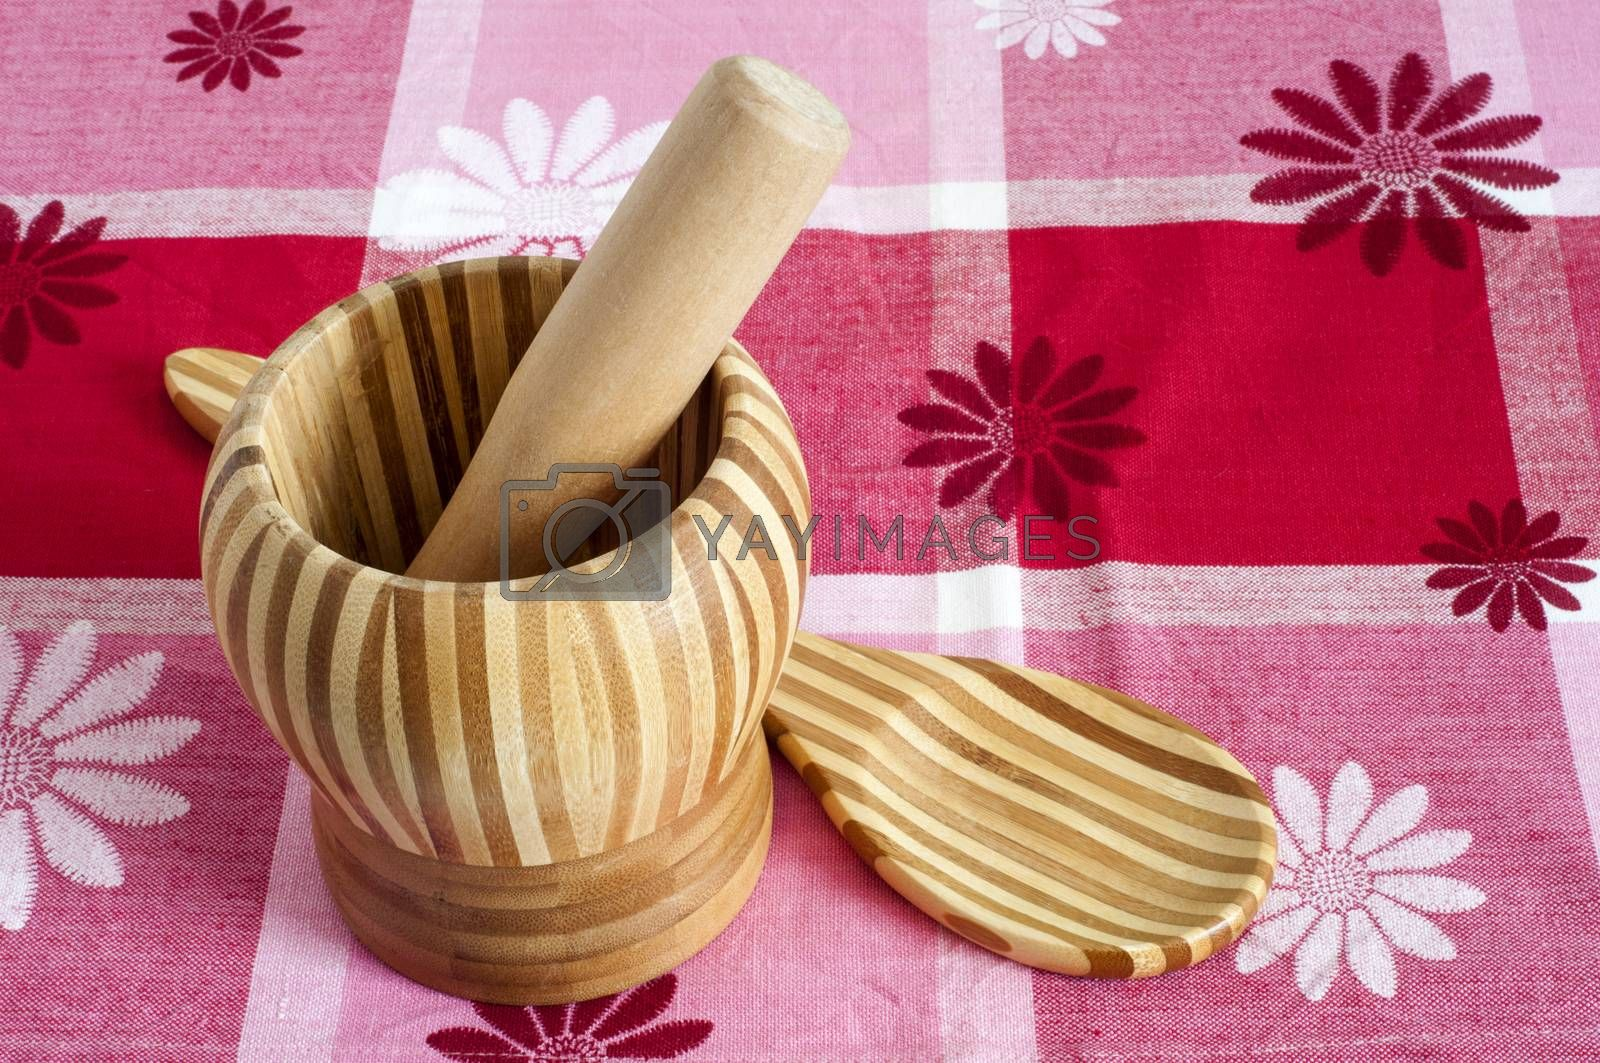 A mortar and a spoon with bamboo wood